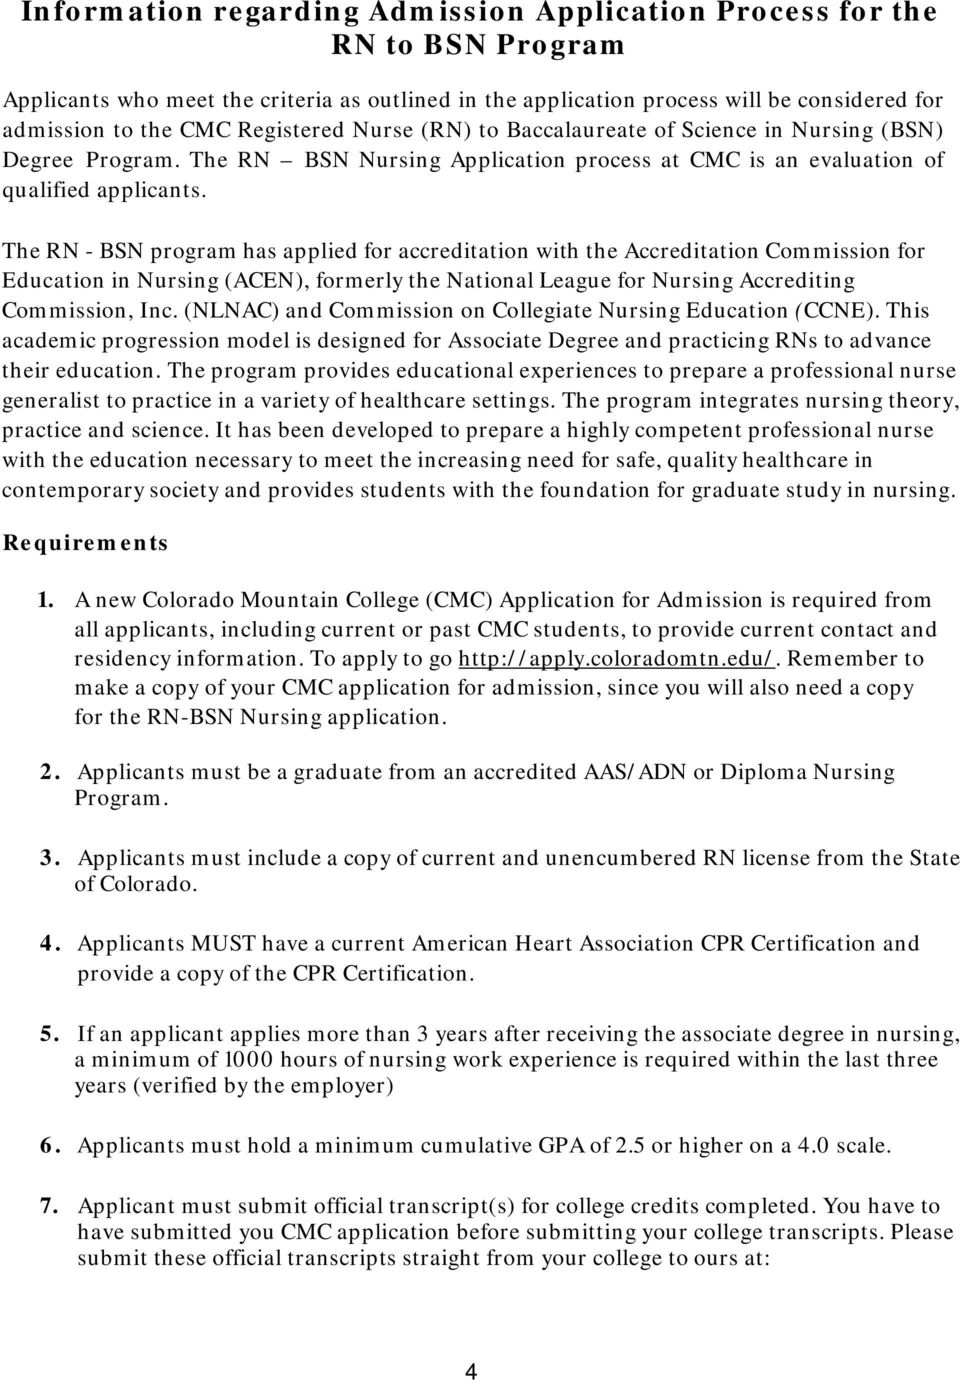 The RN - BSN program has applied for accreditation with the Accreditation Commission for Education in Nursing (ACEN), formerly the National League for Nursing Accrediting Commission, Inc.